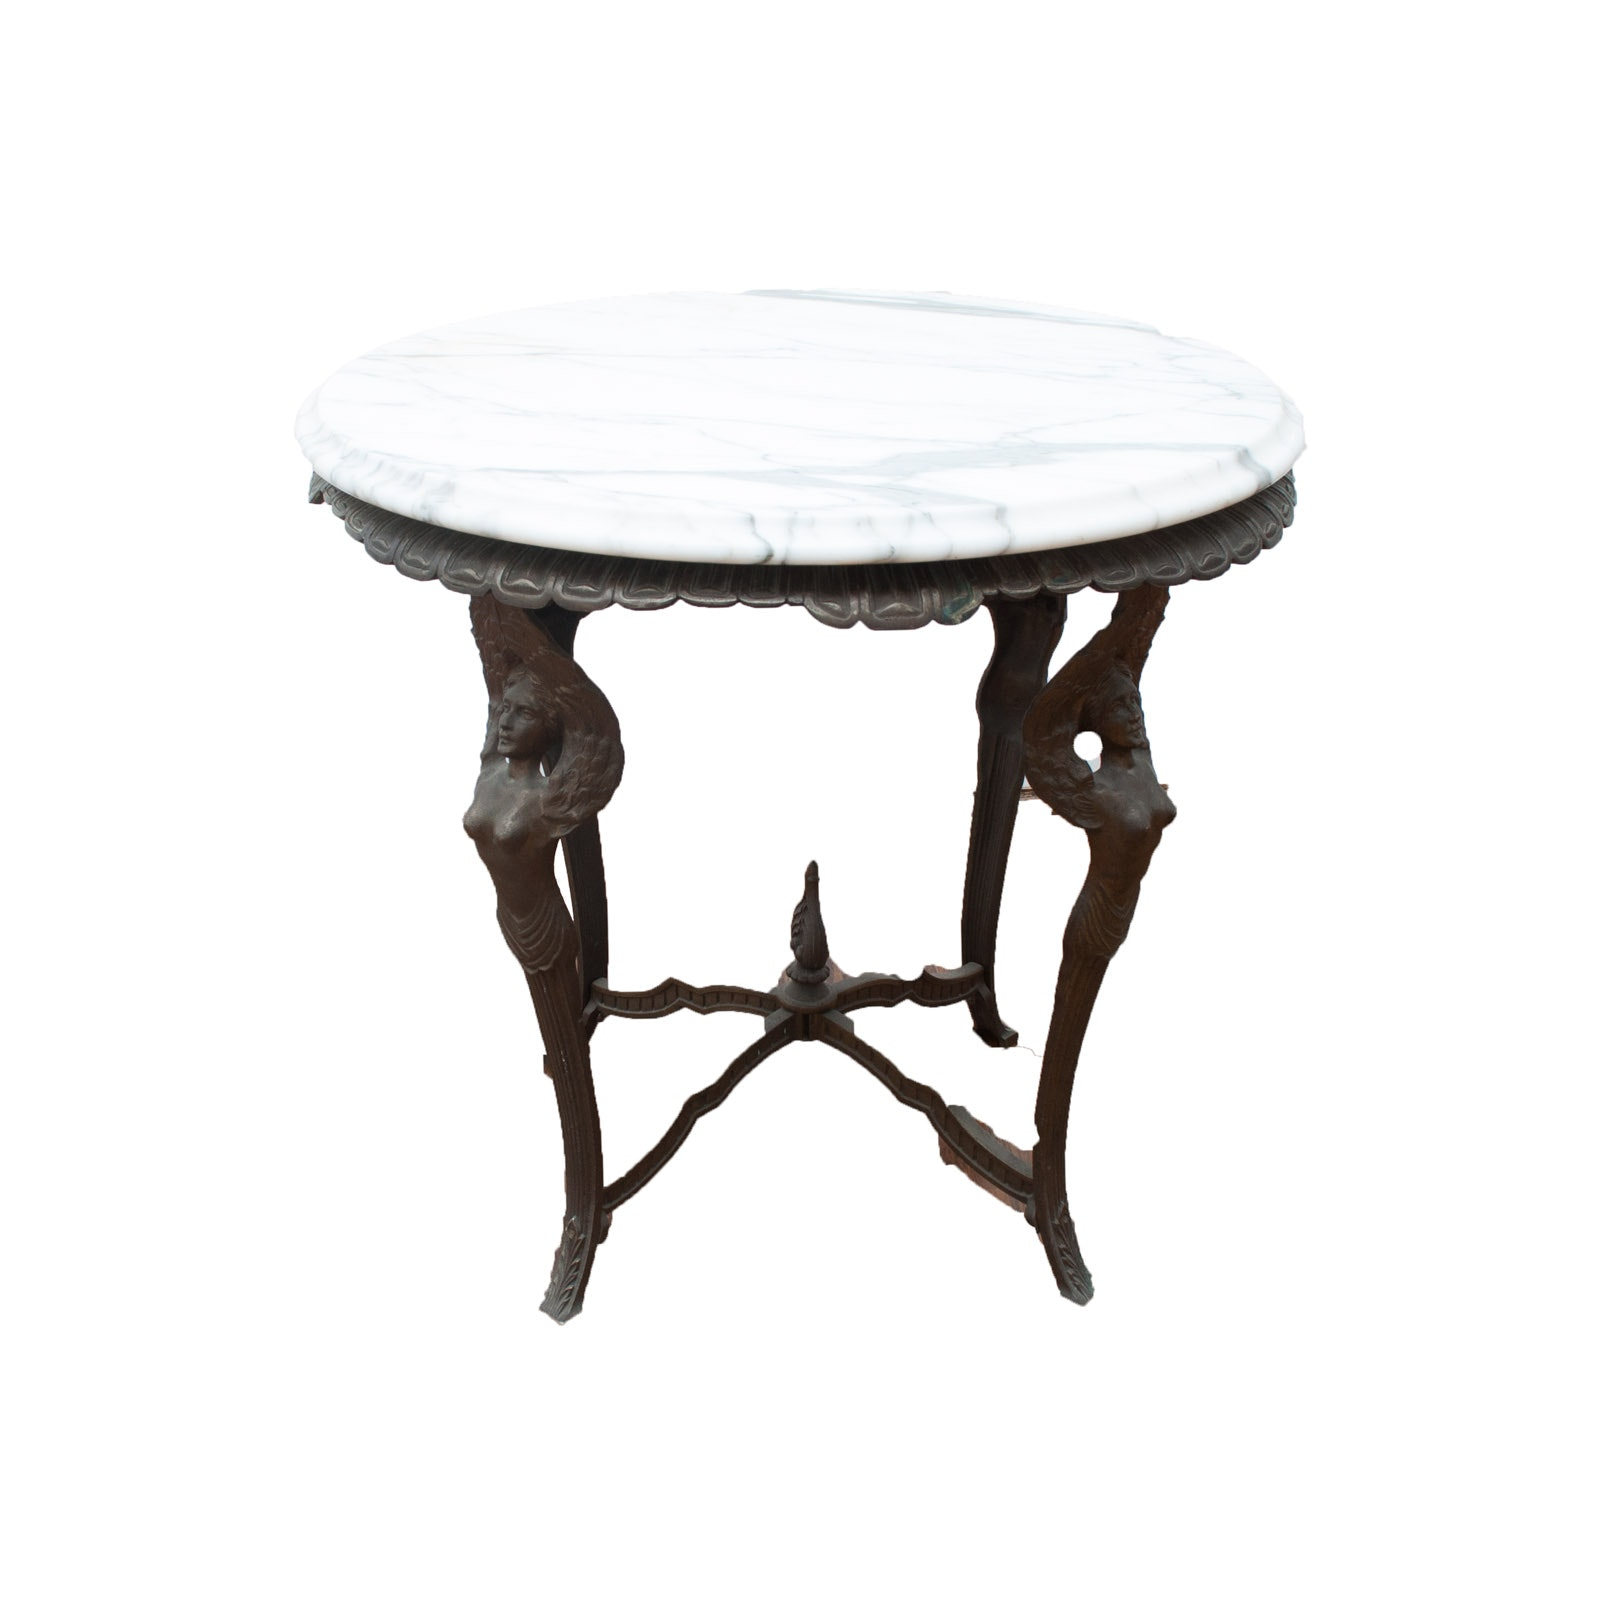 Antique Bronze Winged Woman Parlor Table with White Marble Table Top